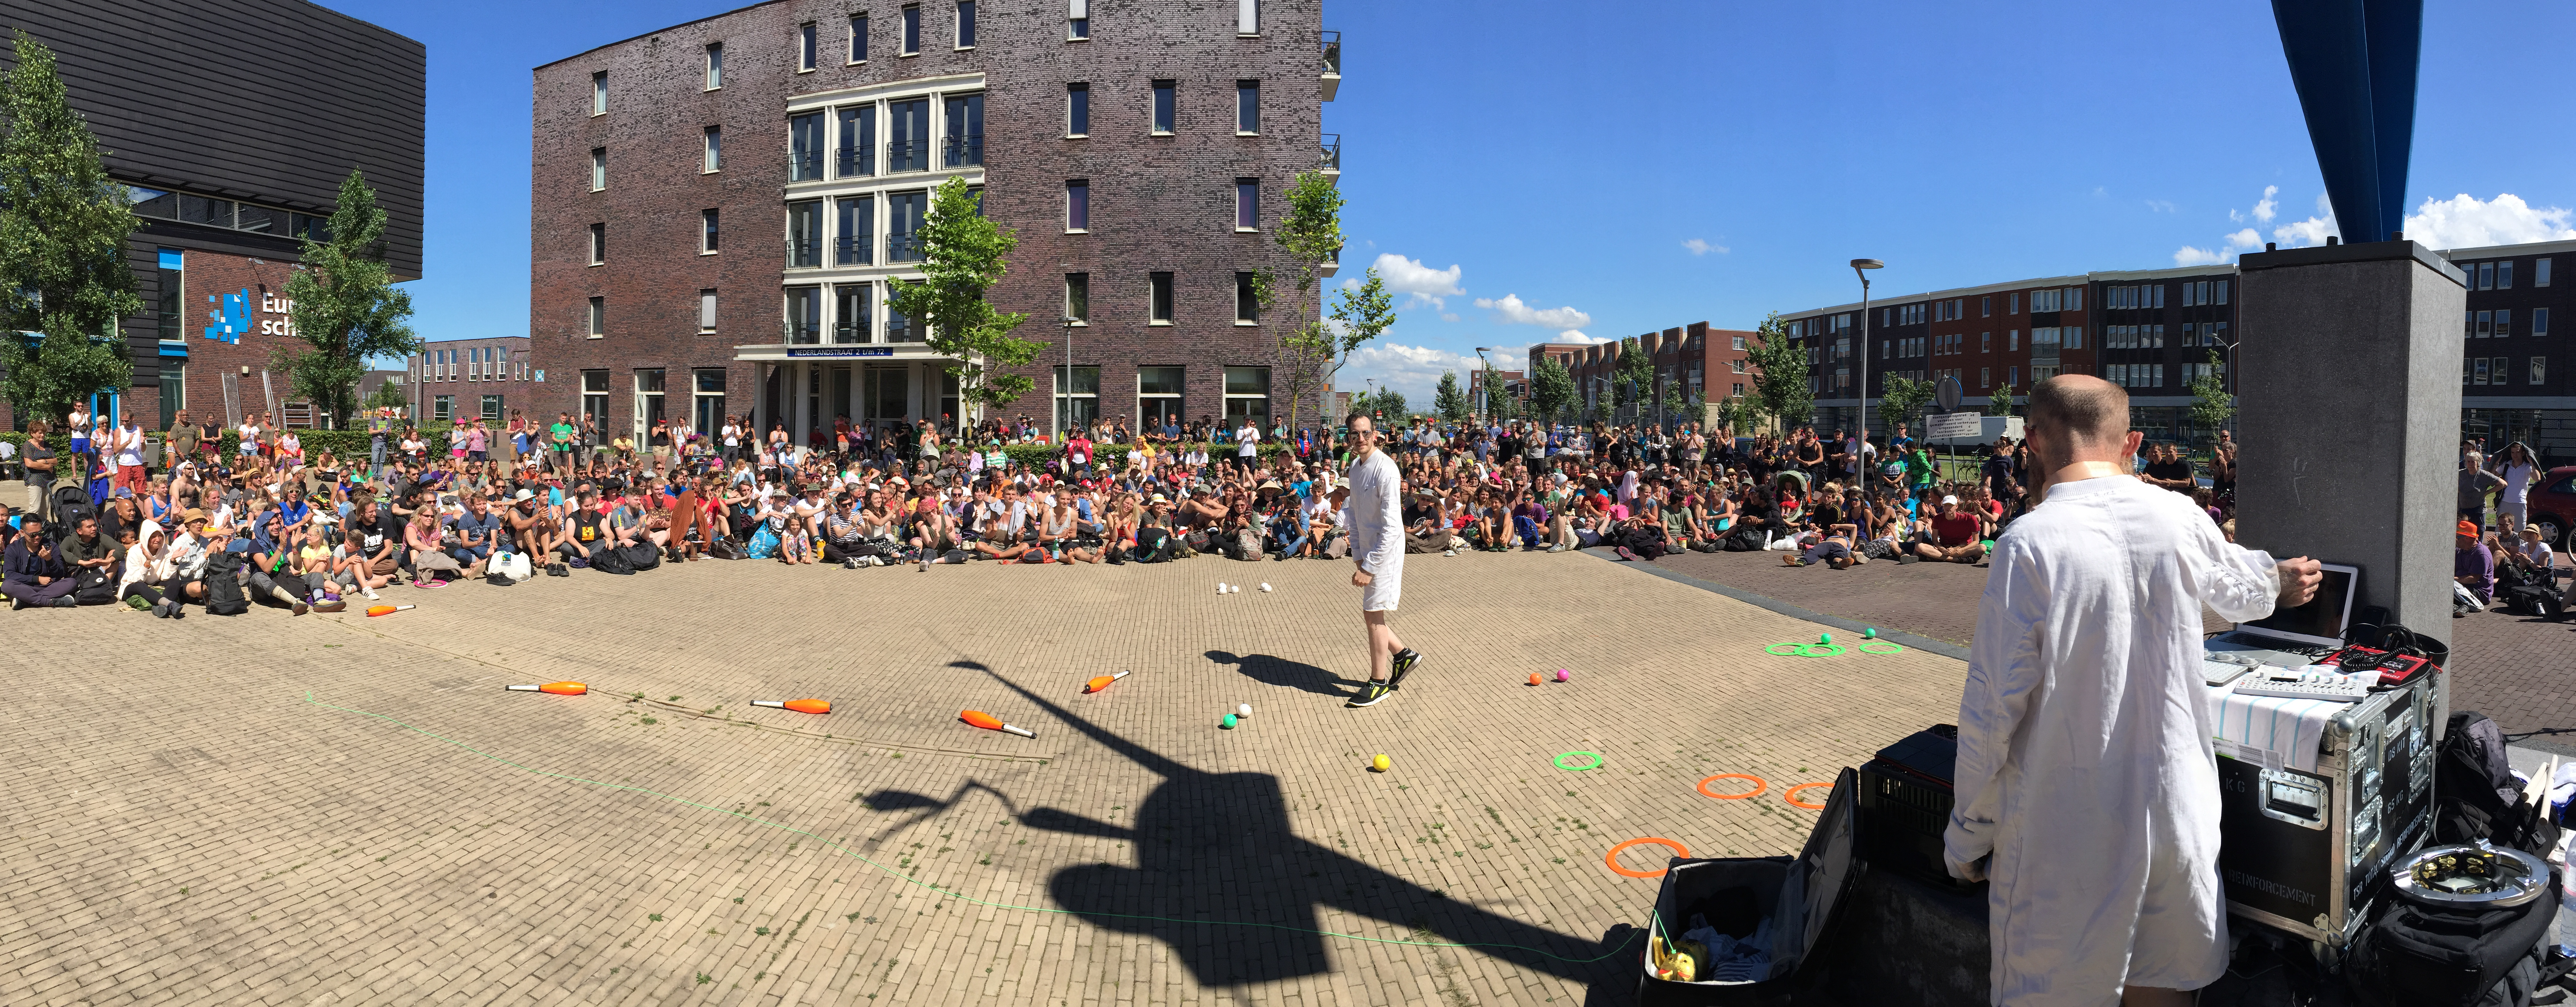 EJC 2016 Almere Day 3 - Jay Gilligan Show and Monday Open Stage: Jay Gilligan Street Show.